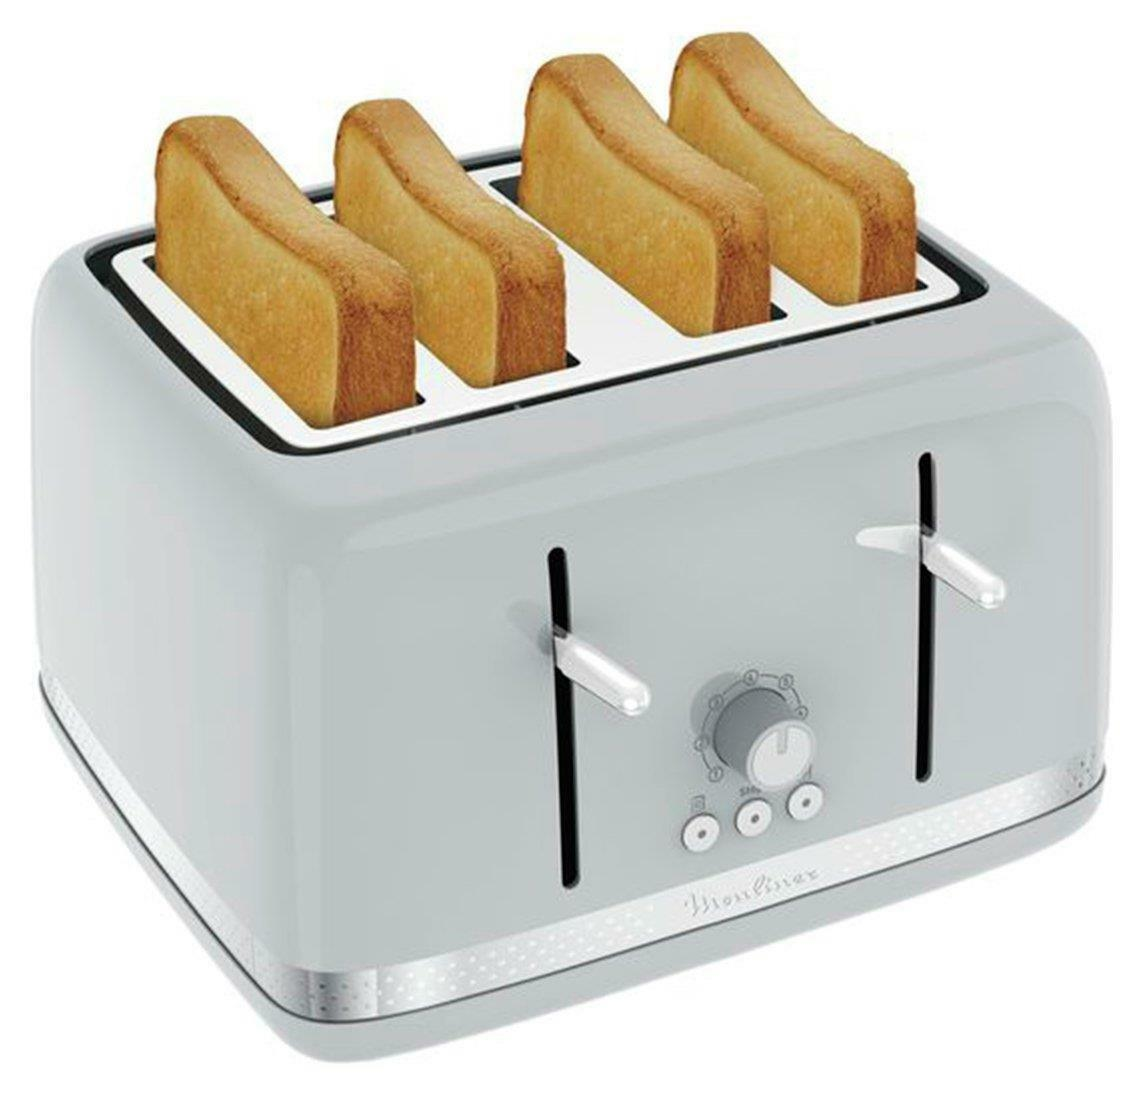 Moulinex Grey 4 Slice Retro Vintage Design Kitchen Bread Toaster - UK Power Plug